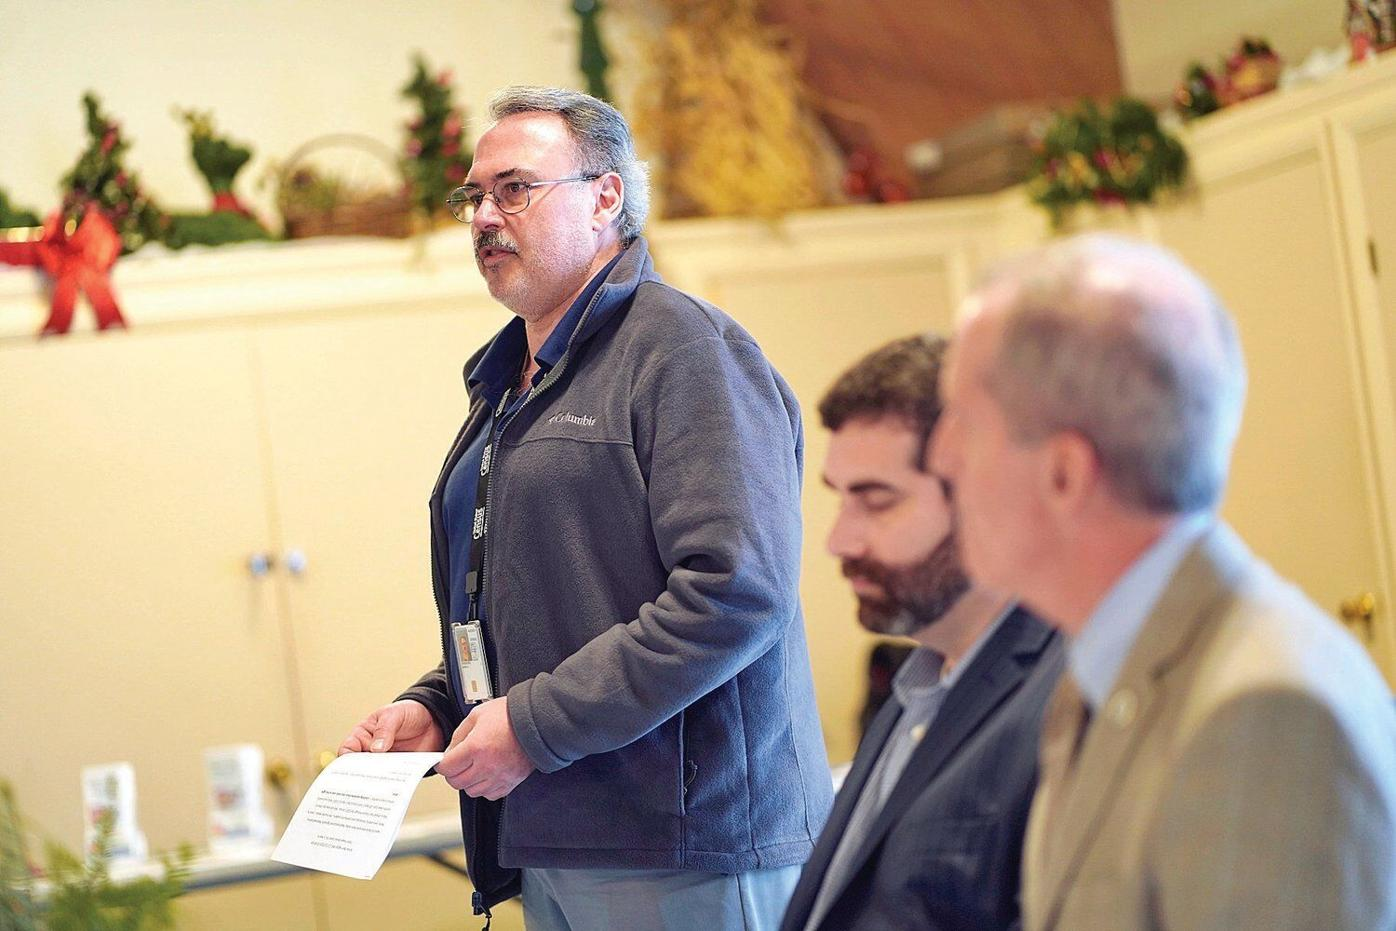 At information sessions, importance of census participation driven home